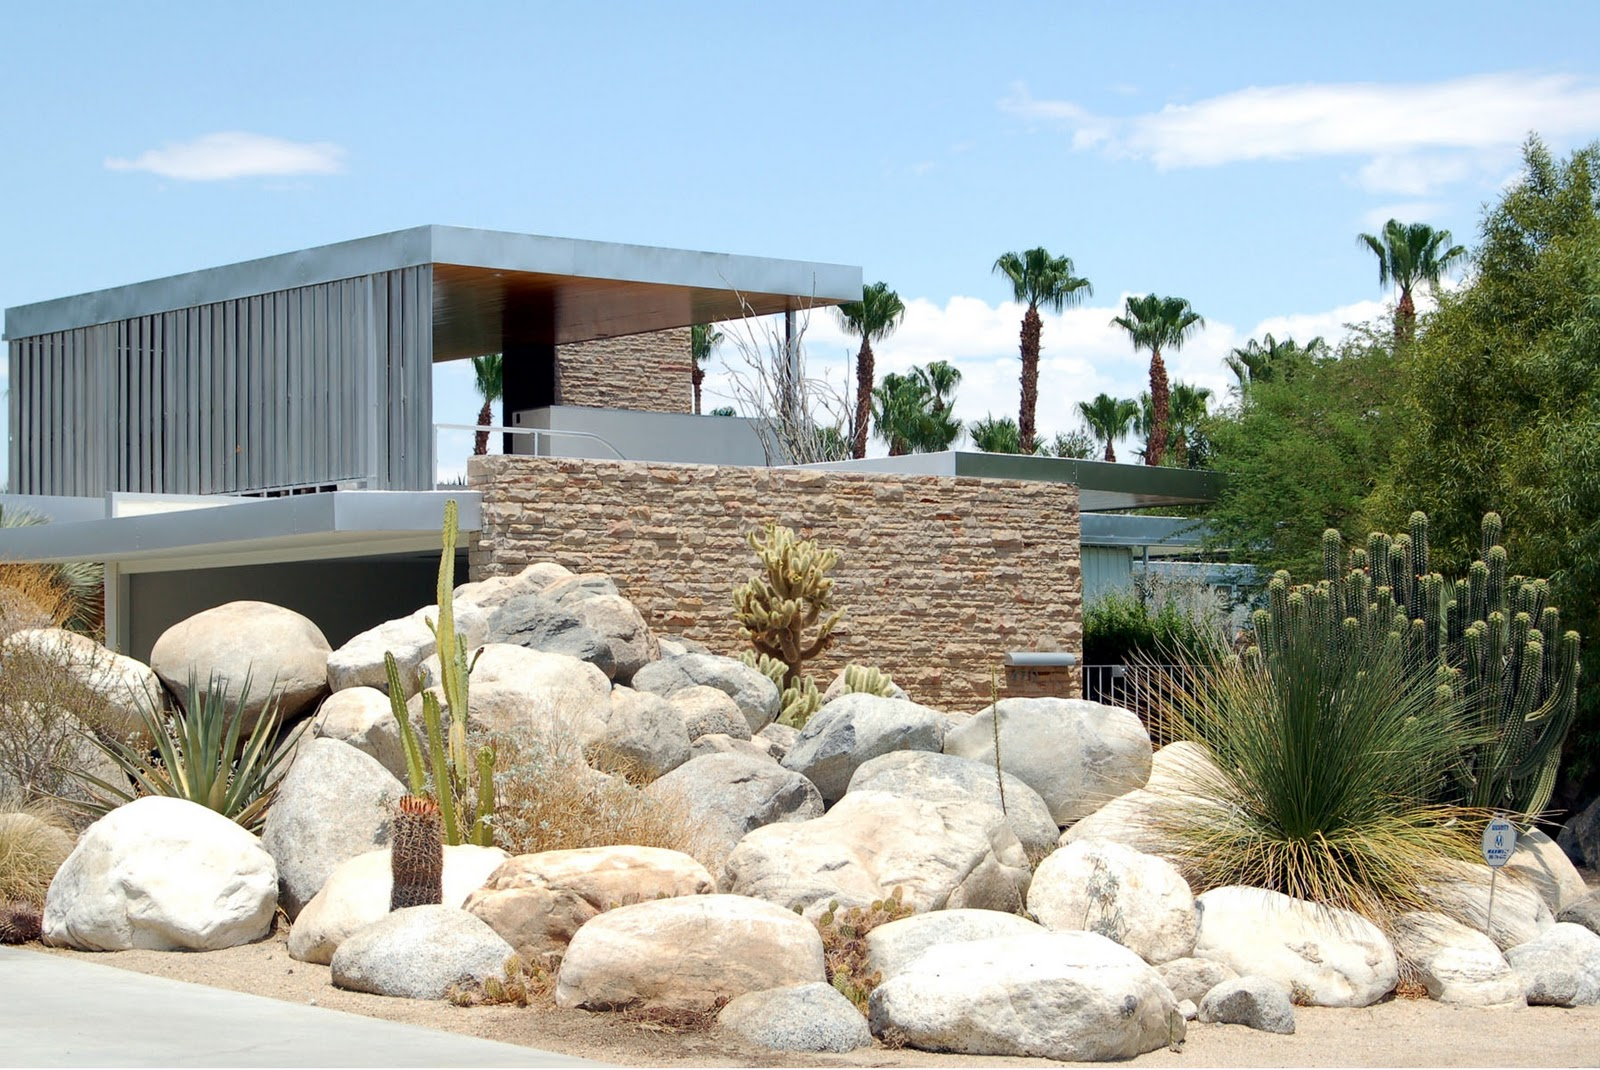 Landscaping ideas mid century modern design by for Modern landscape ideas